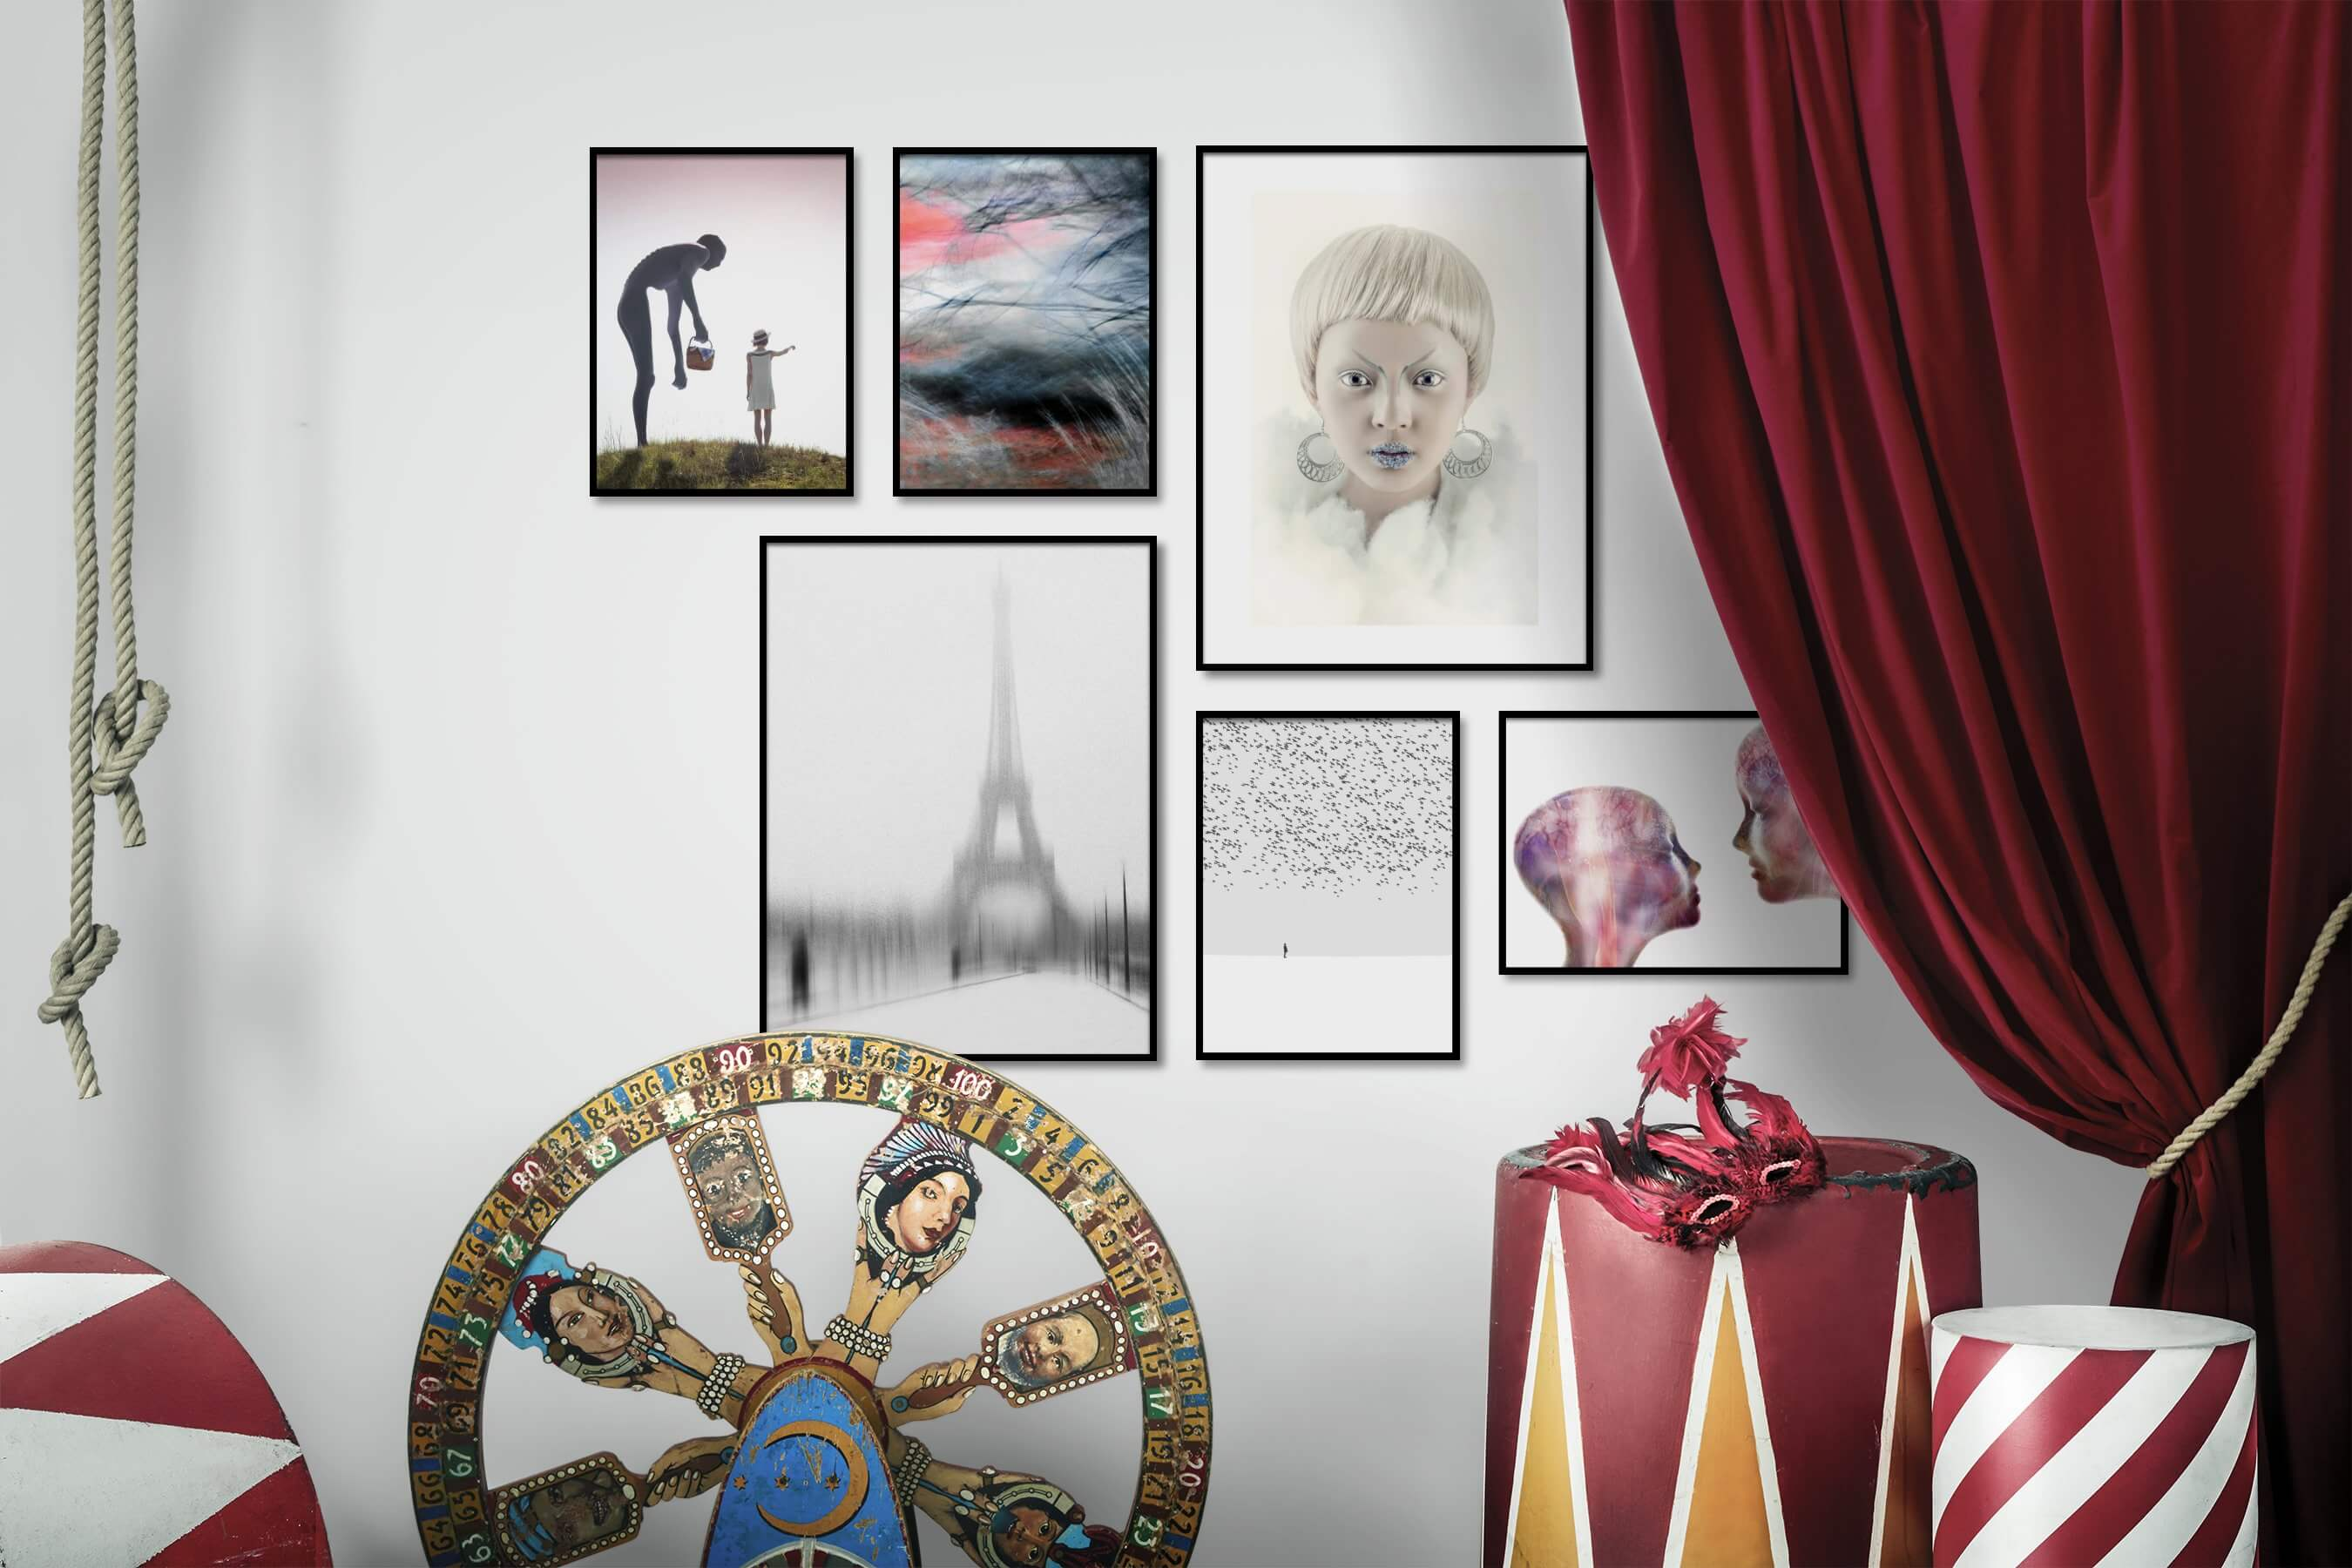 Gallery wall idea with six framed pictures arranged on a wall depicting Artsy, Country Life, For the Maximalist, Nature, Black & White, Bright Tones, For the Minimalist, City Life, Fashion & Beauty, Animals, and Mindfulness